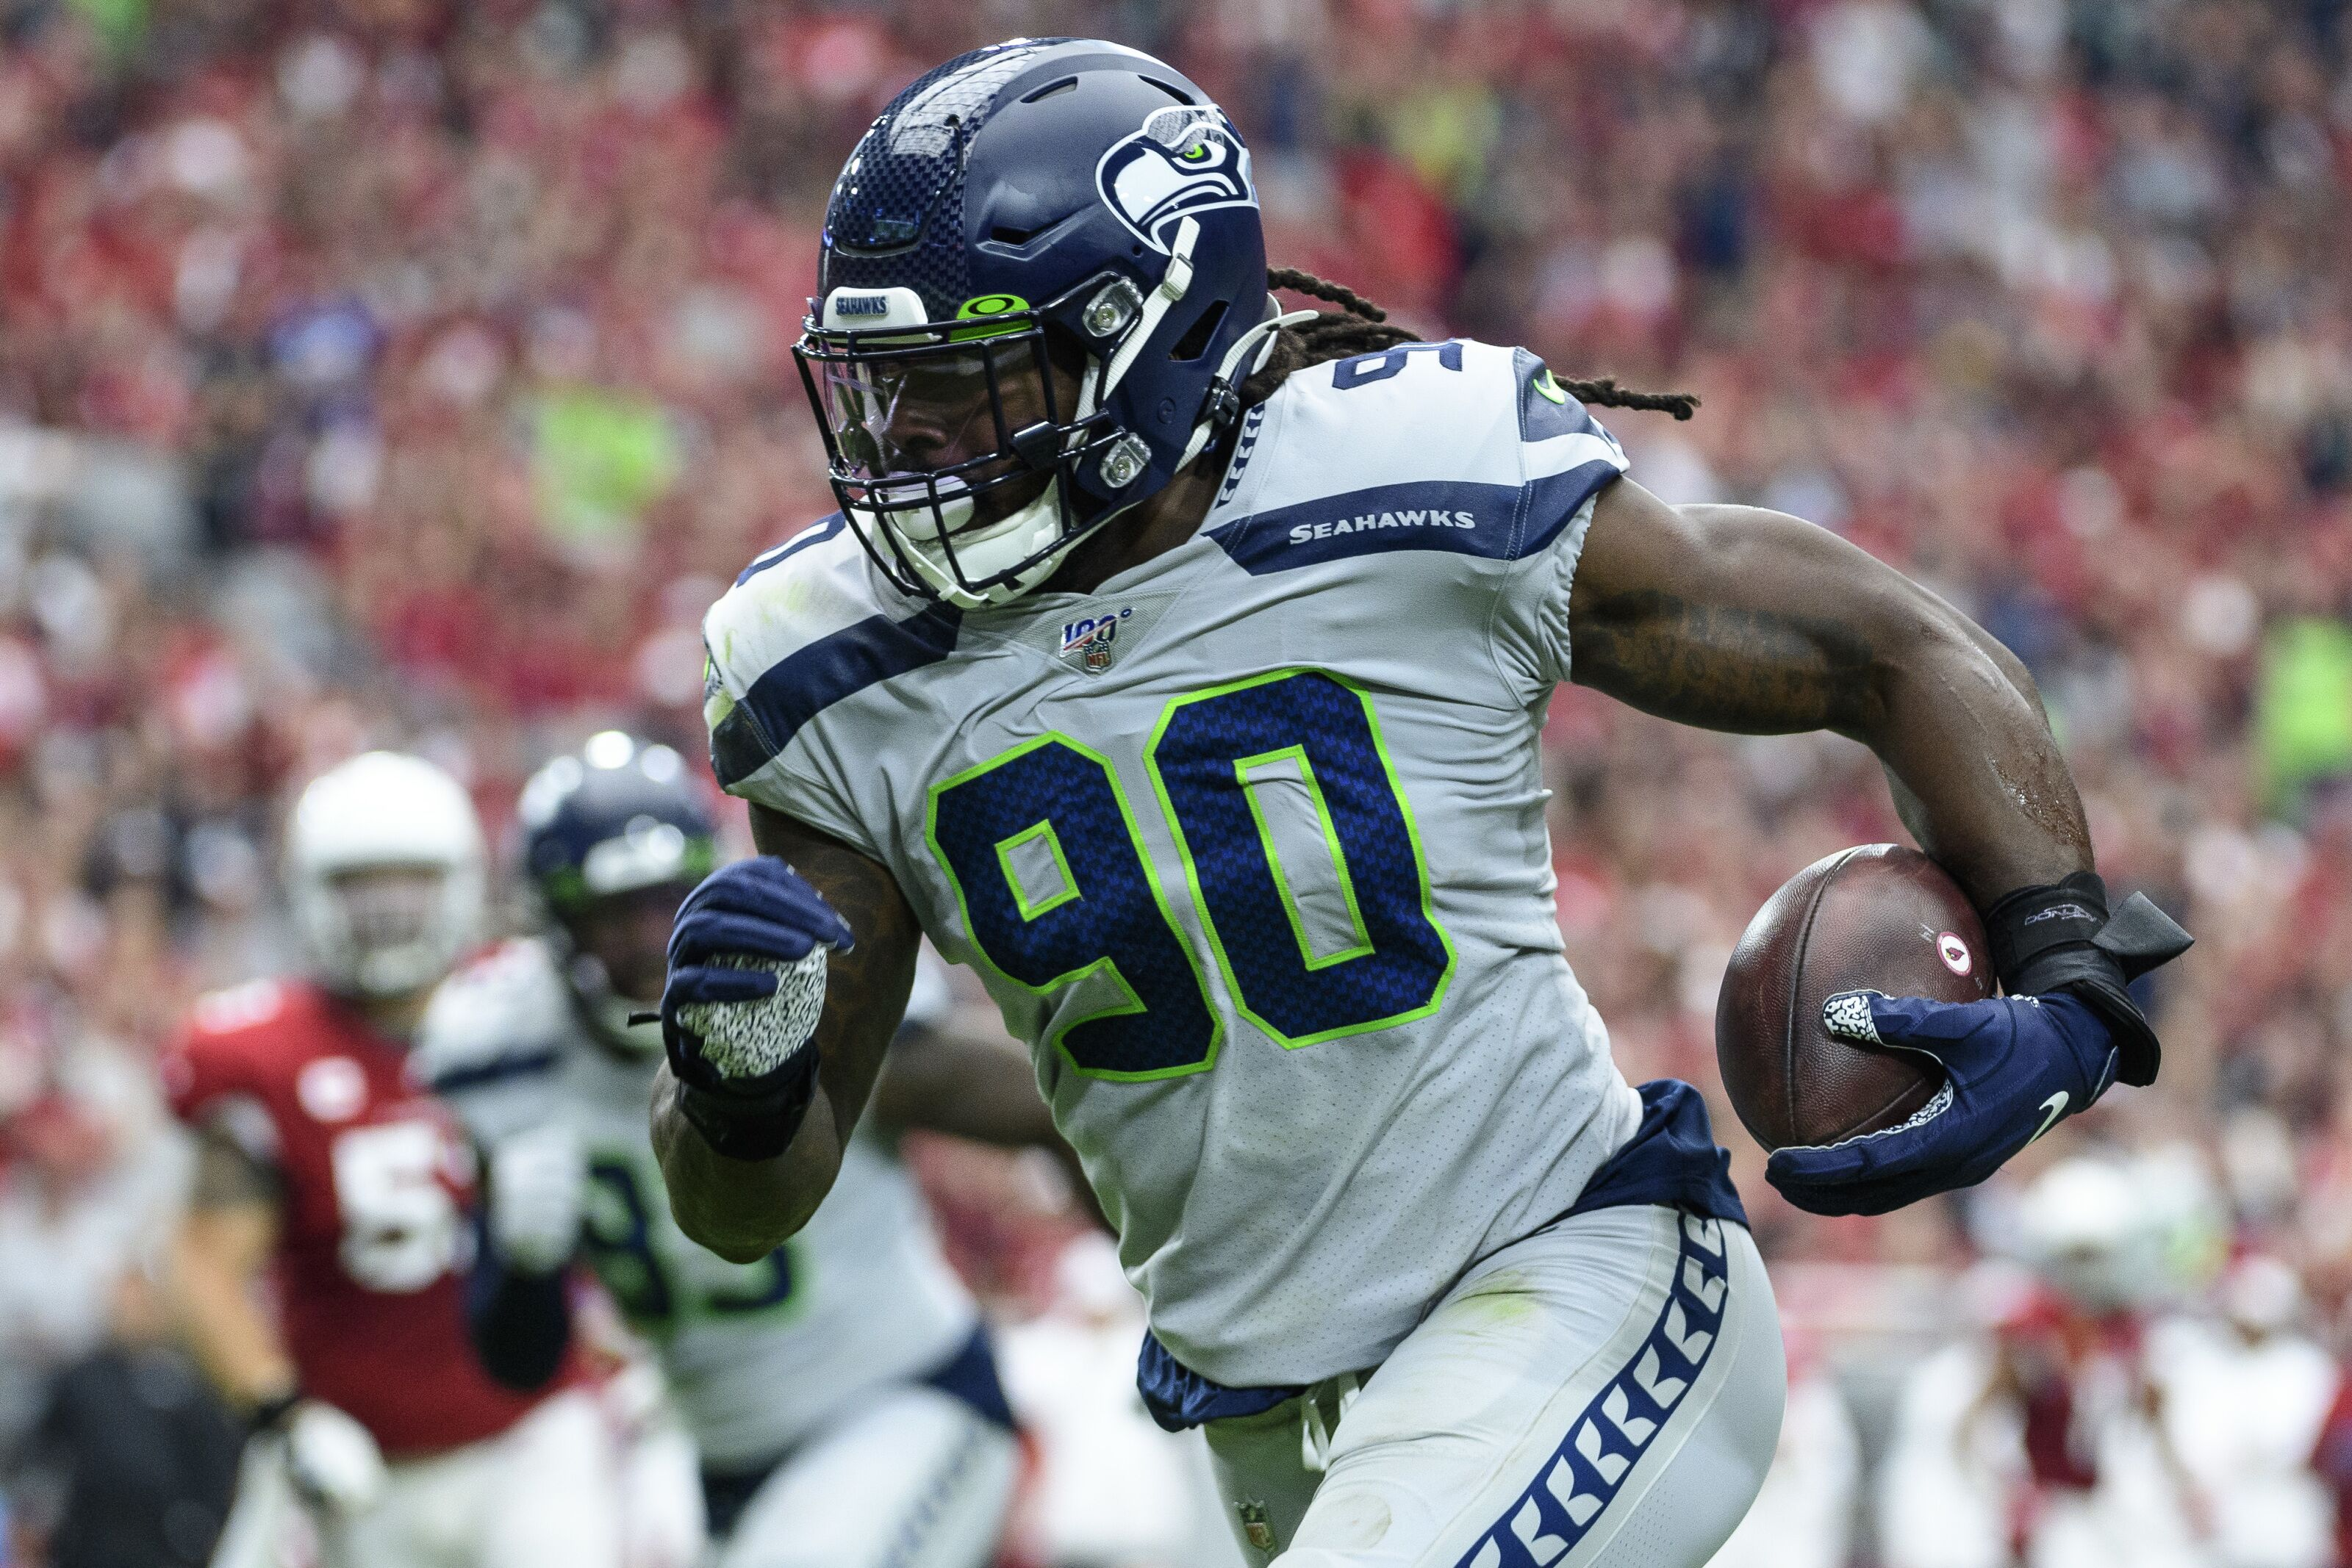 Seahawks free agents Seattle should re-sign or let walk